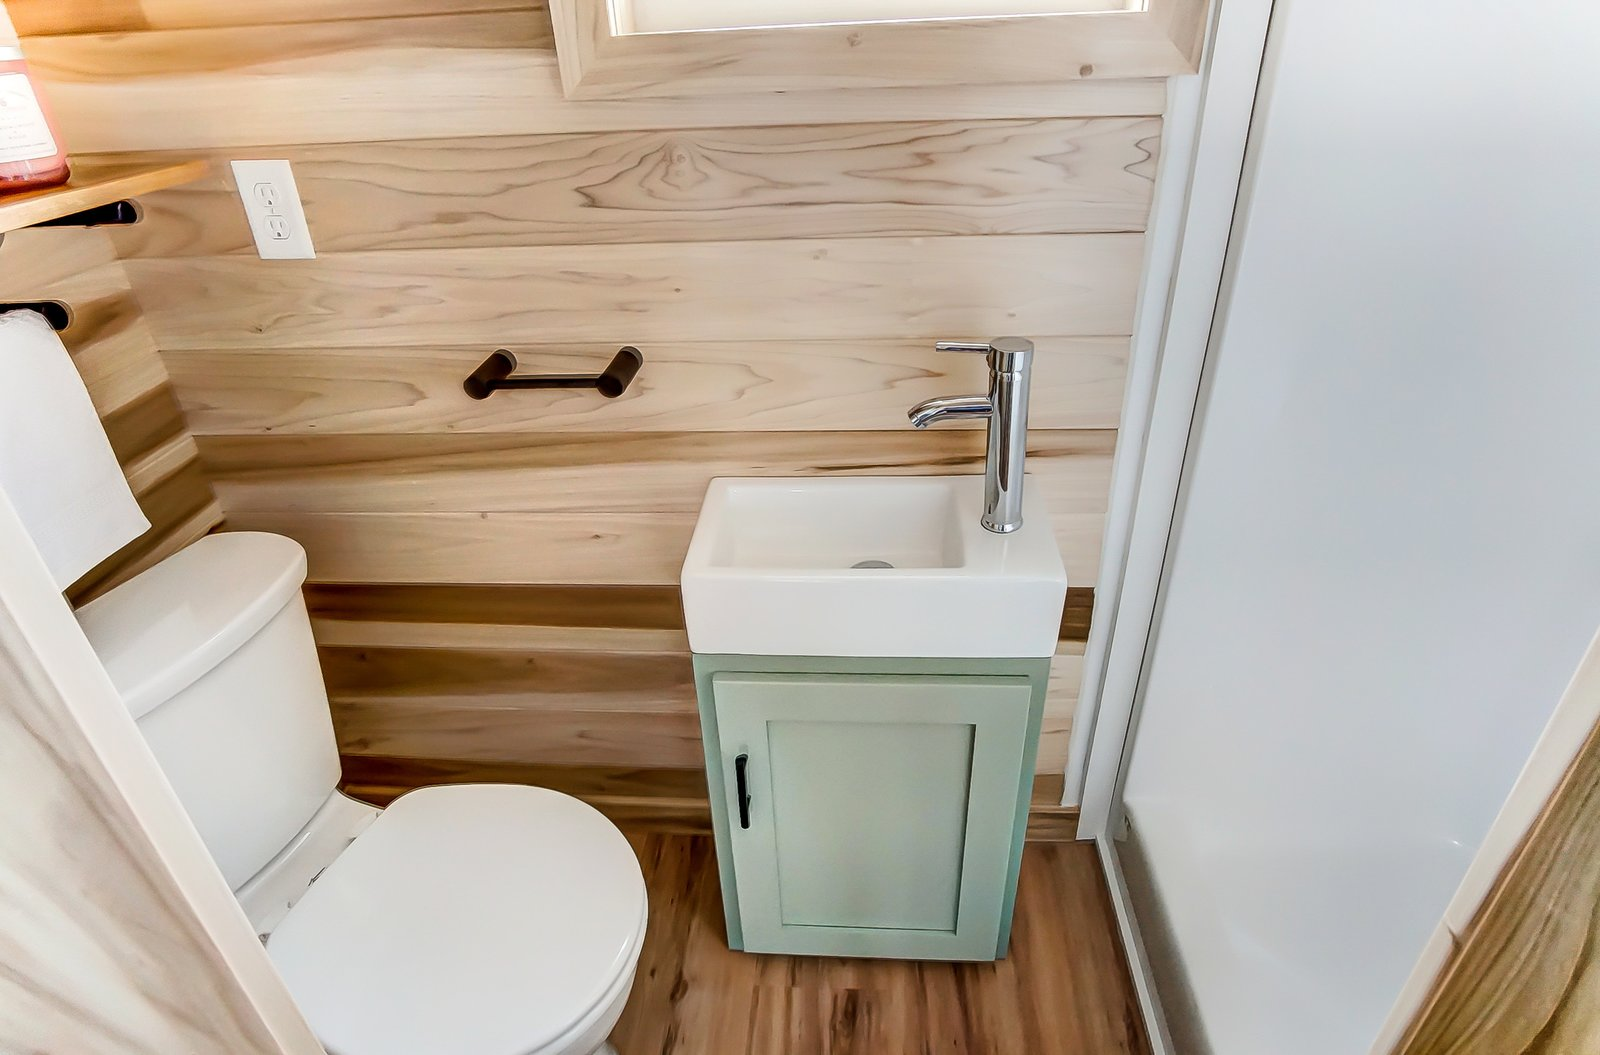 Bath Room, Medium Hardwood Floor, Two Piece Toilet, and Drop In Sink A look at the compact and cozy bathroom.    Photo 11 of 11 in This 270-Square-Foot Tiny Home Is Now Up For Grabs at $89K